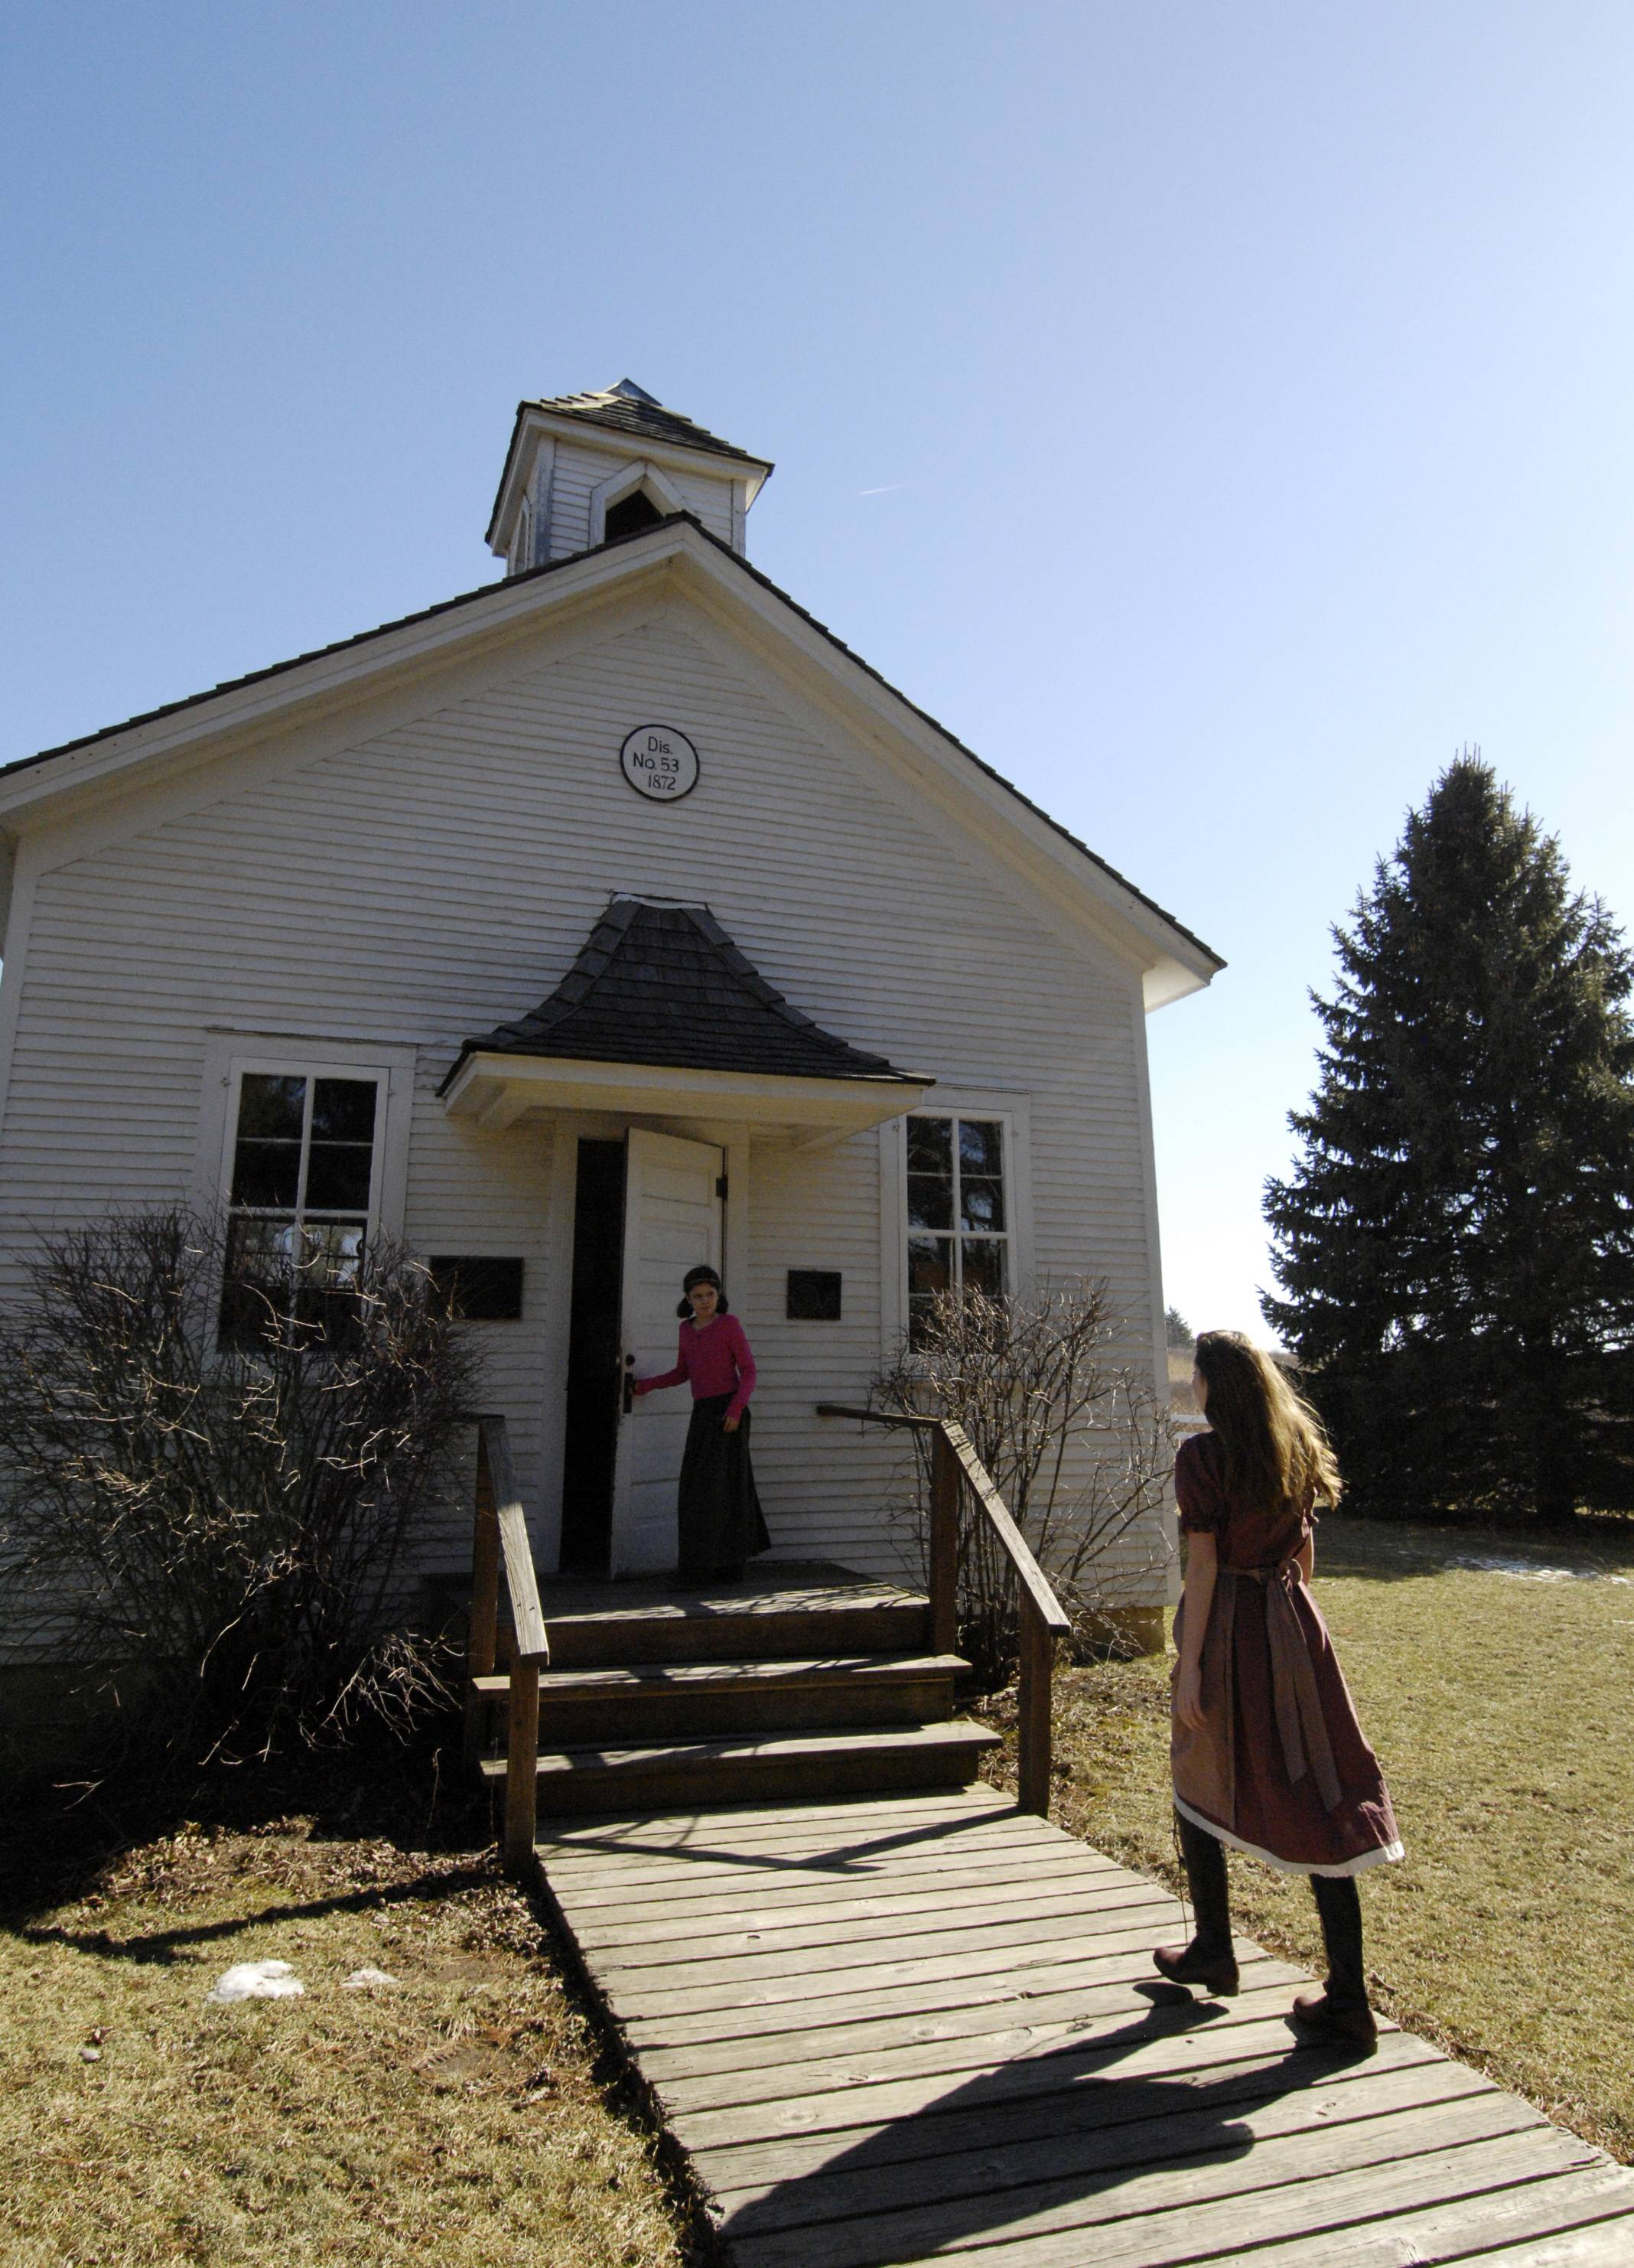 Piper Winkler, 13 of Geneva walks up the board walkway to the historic Pioneer Sholes one-room schoolhouse in the LeRoy Oakes Forest Preserve, Sunday during their winter open house.